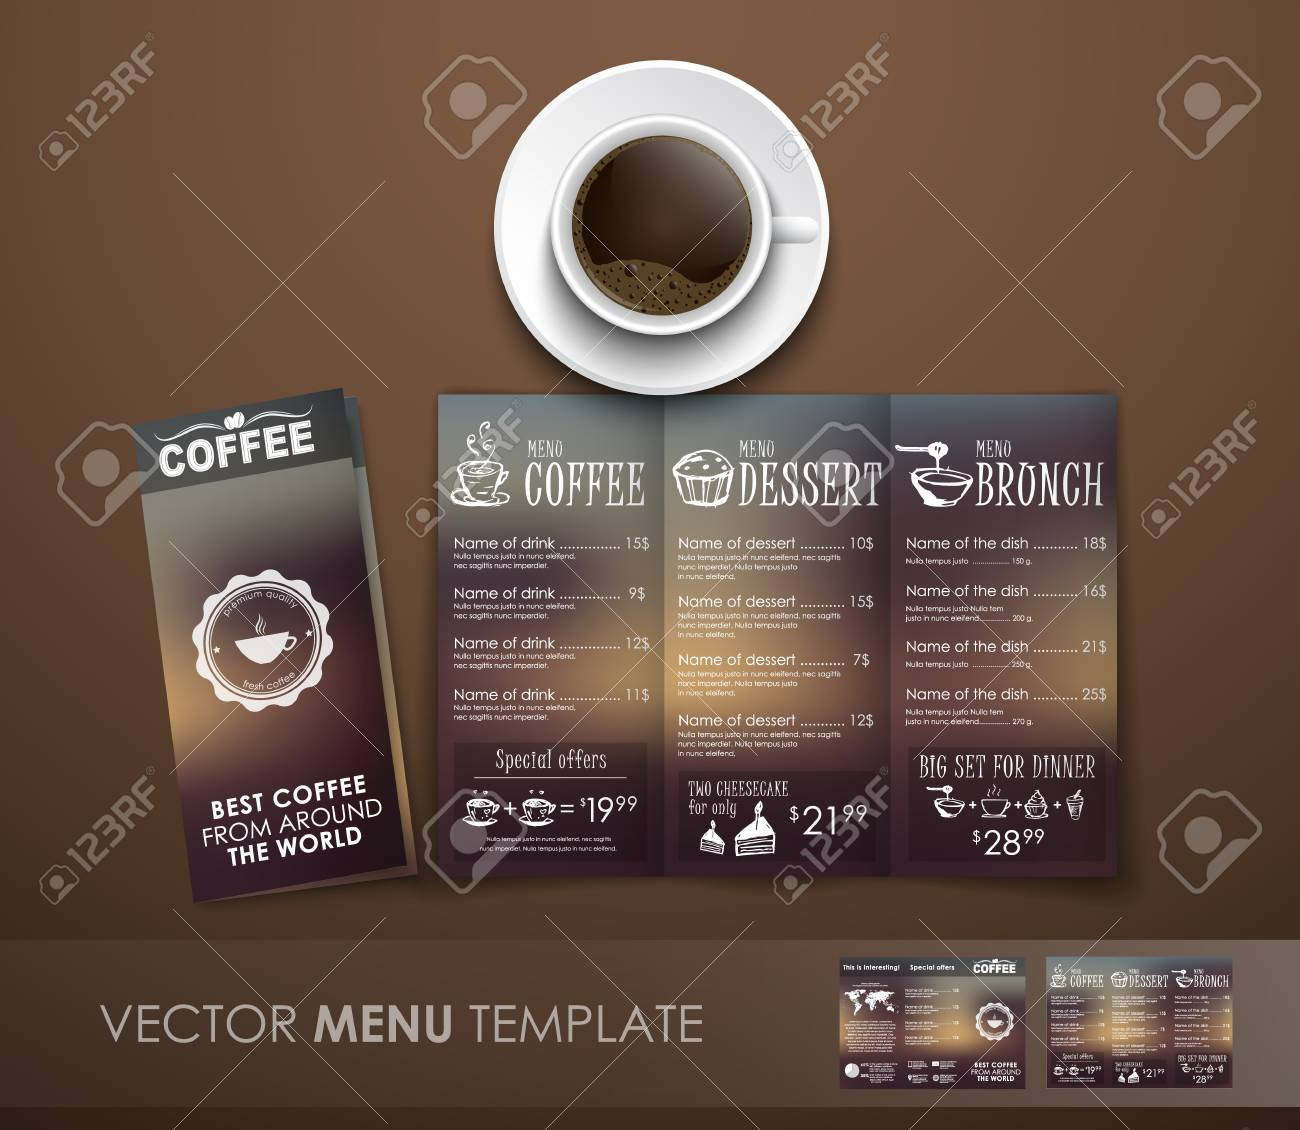 Design Triple Unfolding Coffee Menu With Hand Drawings And Blurred - Menu mockup template